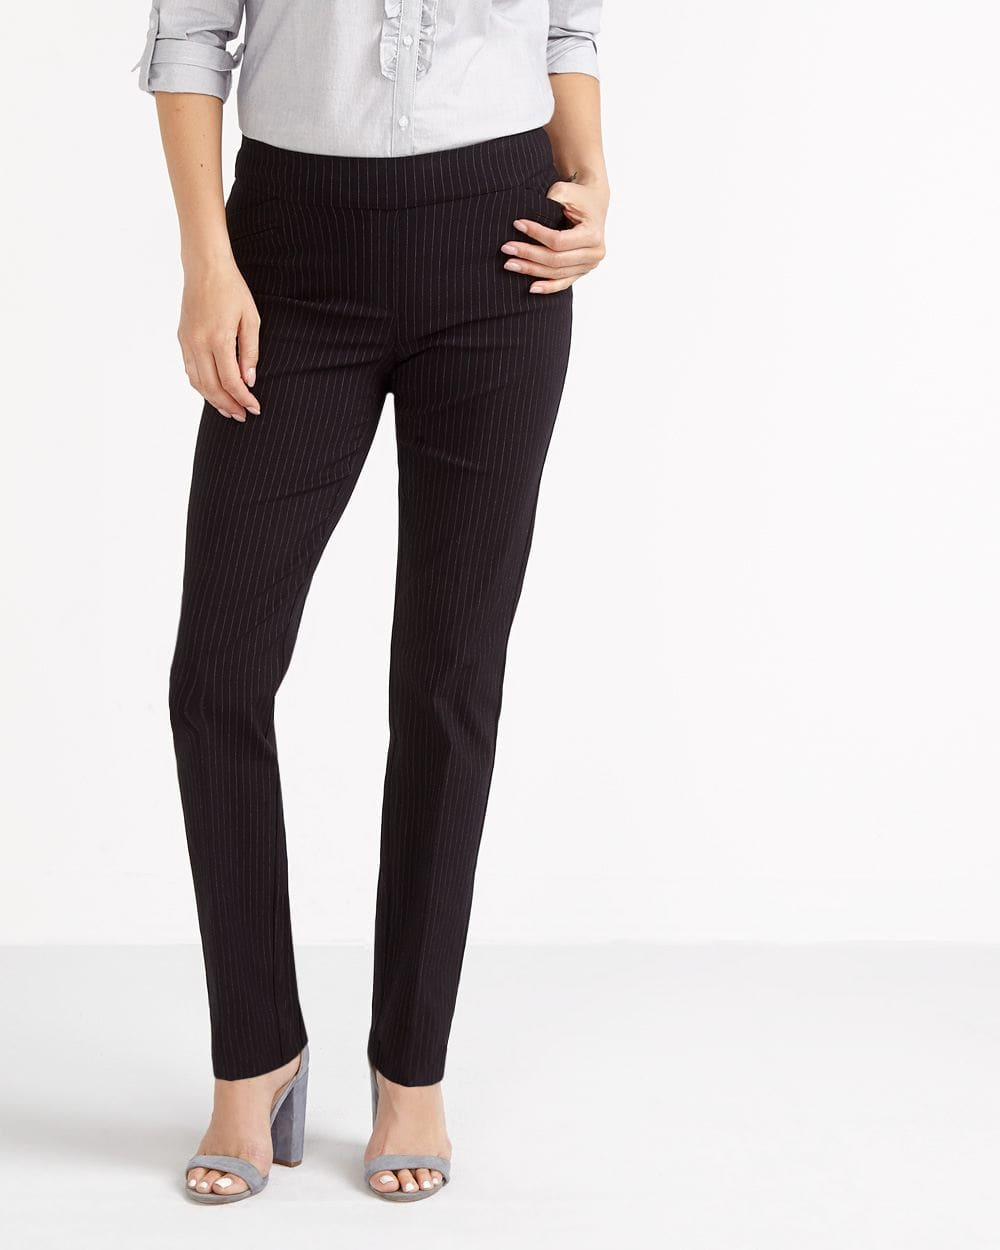 The Iconic Straight Leg Striped Pants